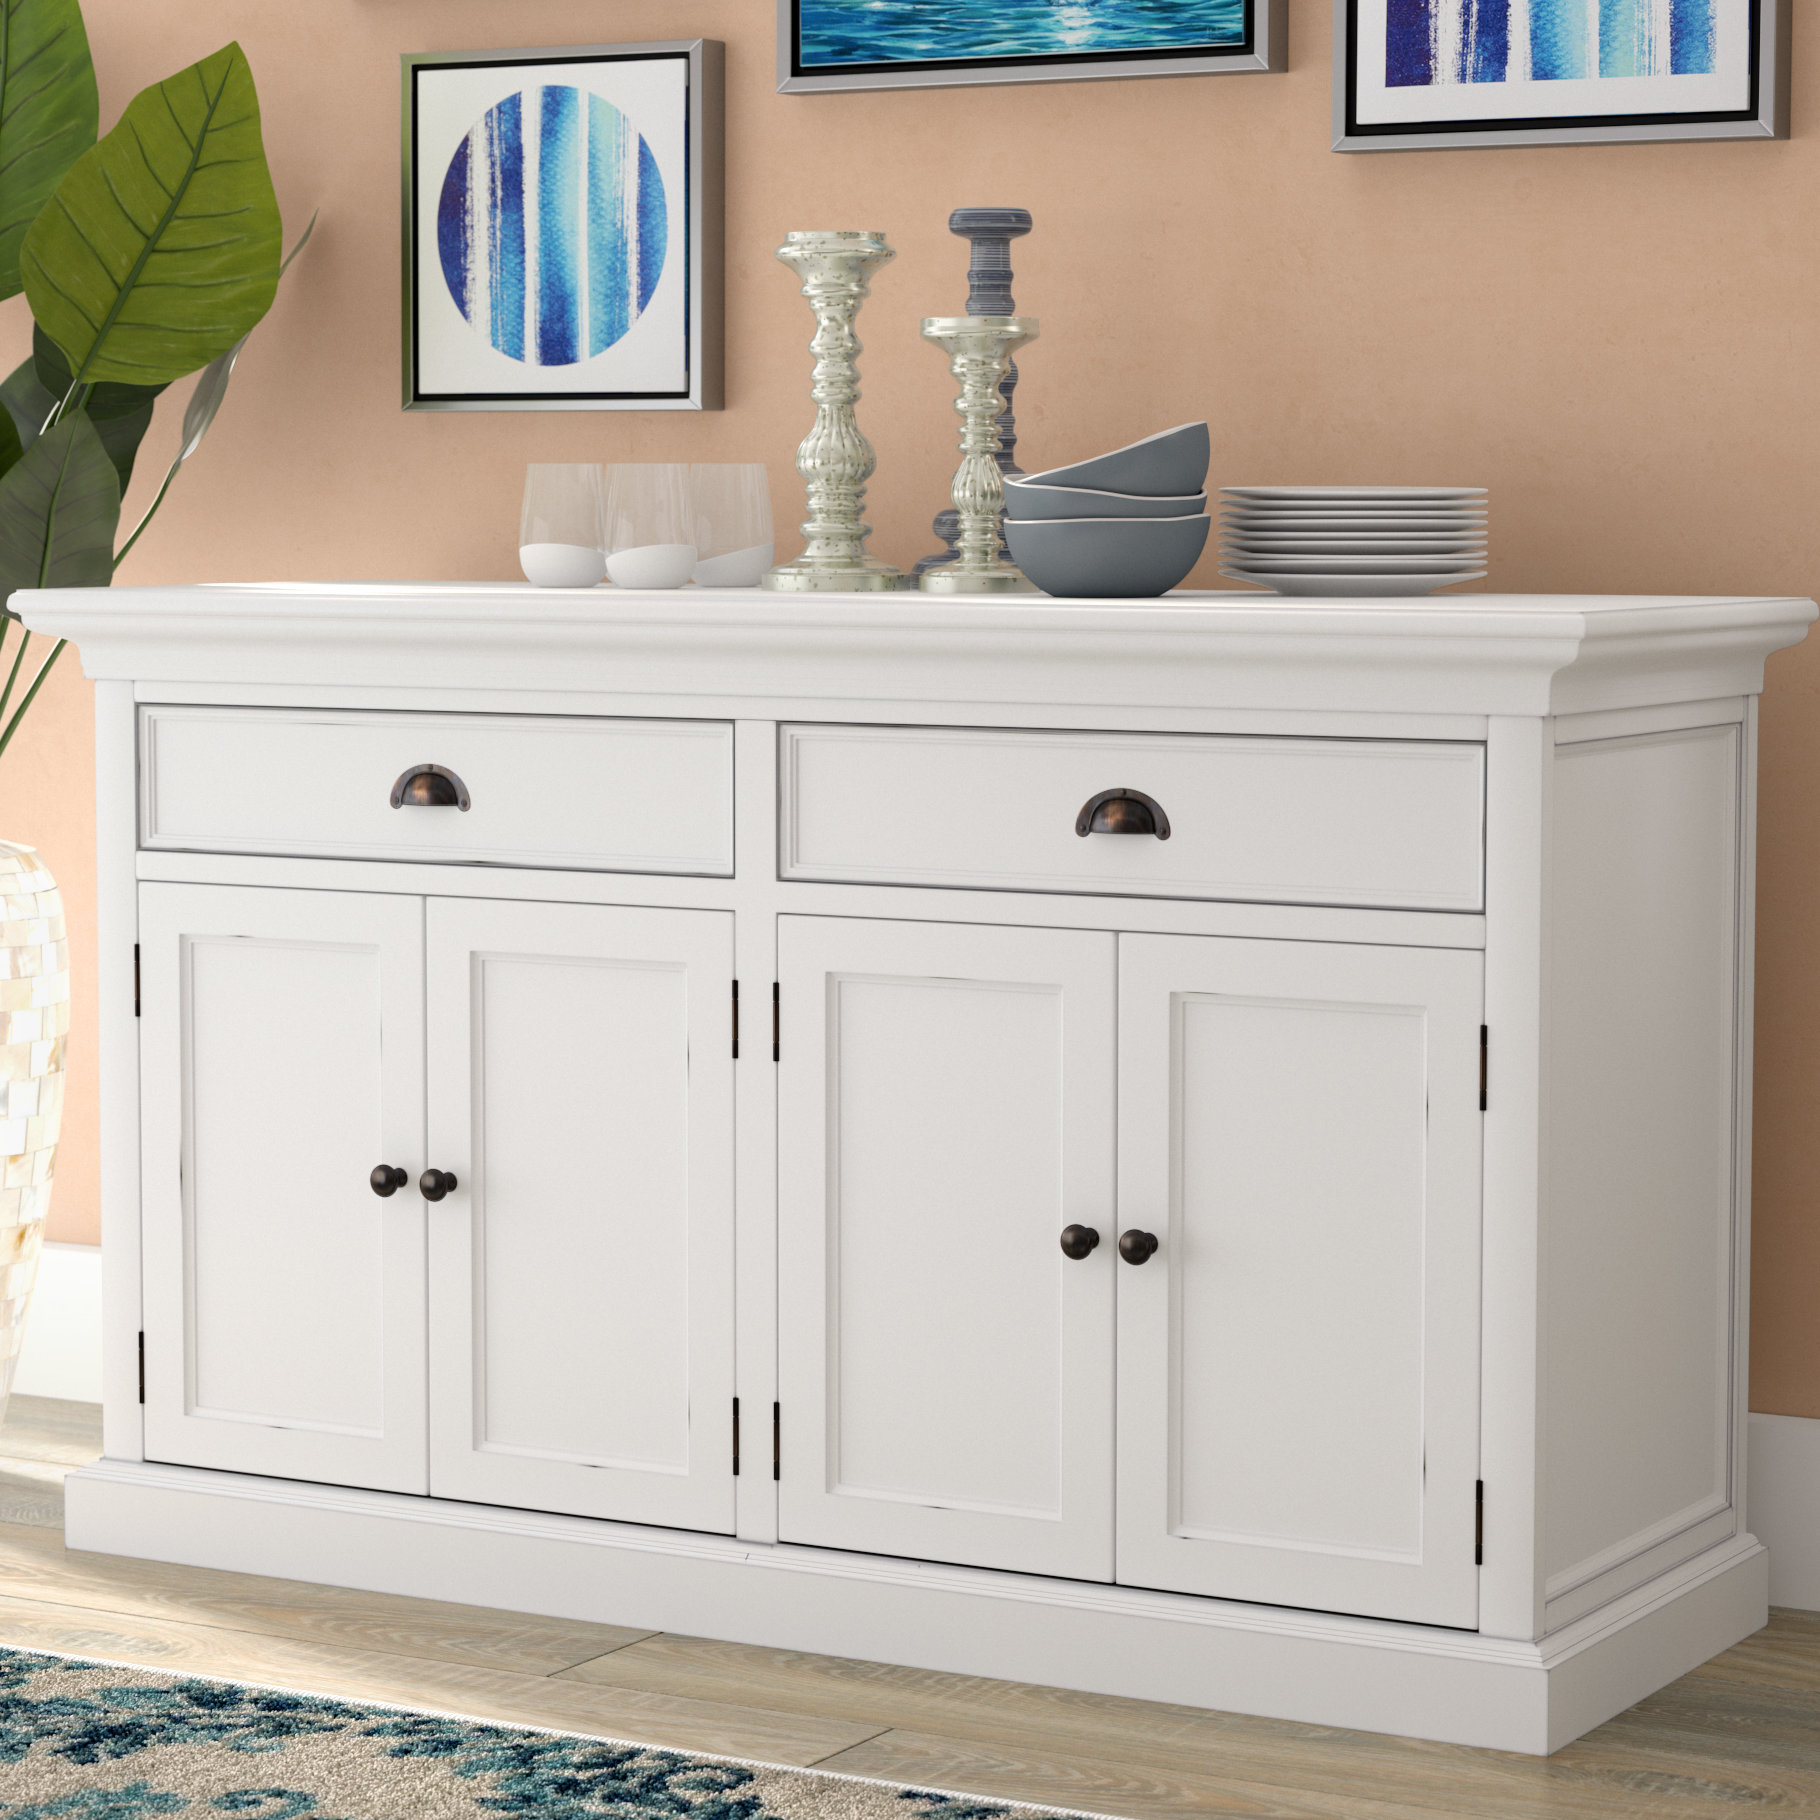 Beachcrest Home Amityville Wood Sideboard & Reviews | Wayfair with regard to Courtdale Sideboards (Image 7 of 30)